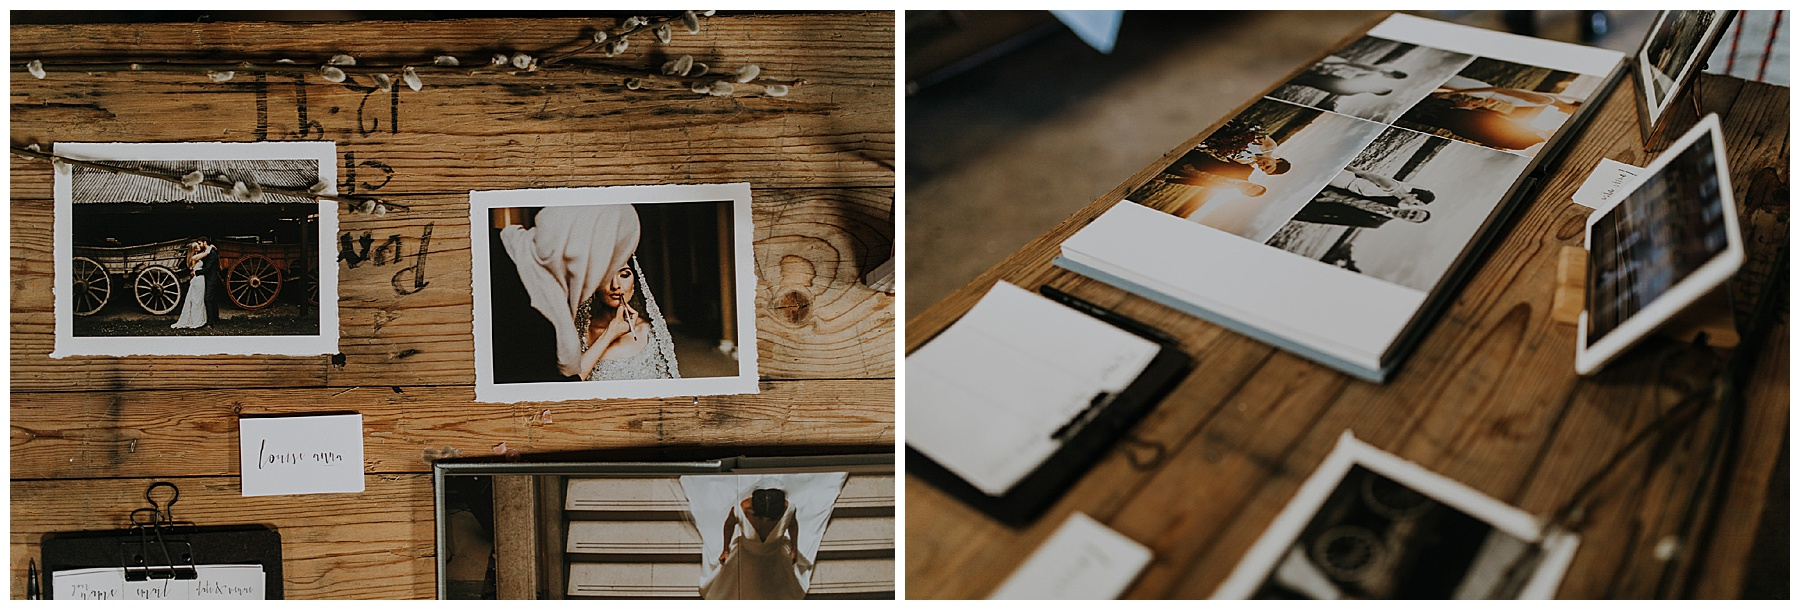 deckled edge photos for a wedding stand